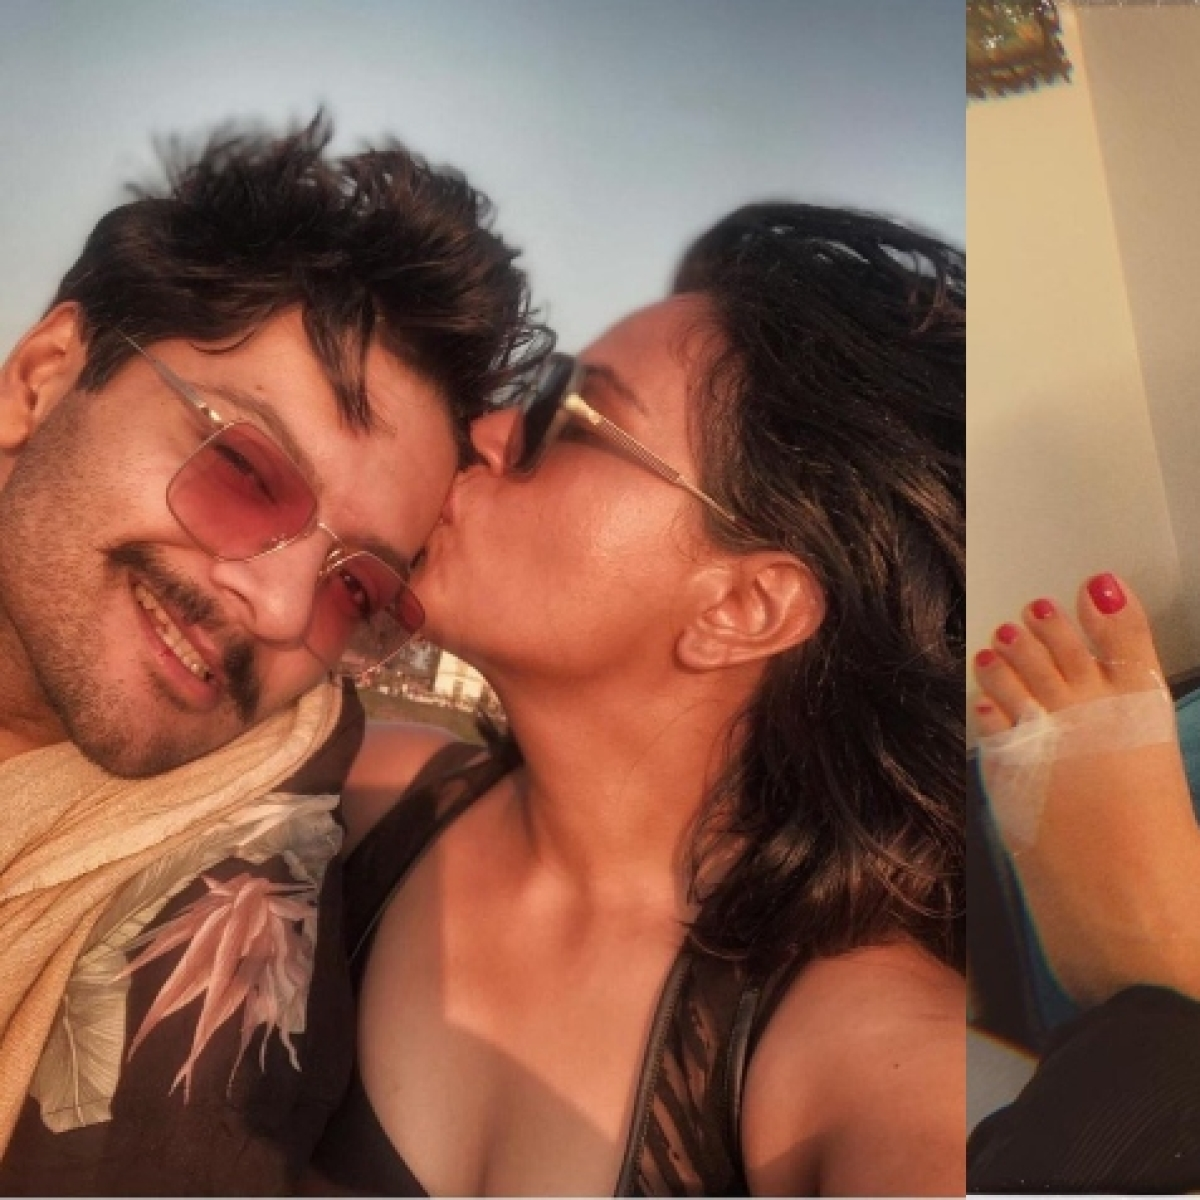 'In sickness and in health': Richa Chadha, who fractured her foot, thanks beau Ali Fazal for all the care